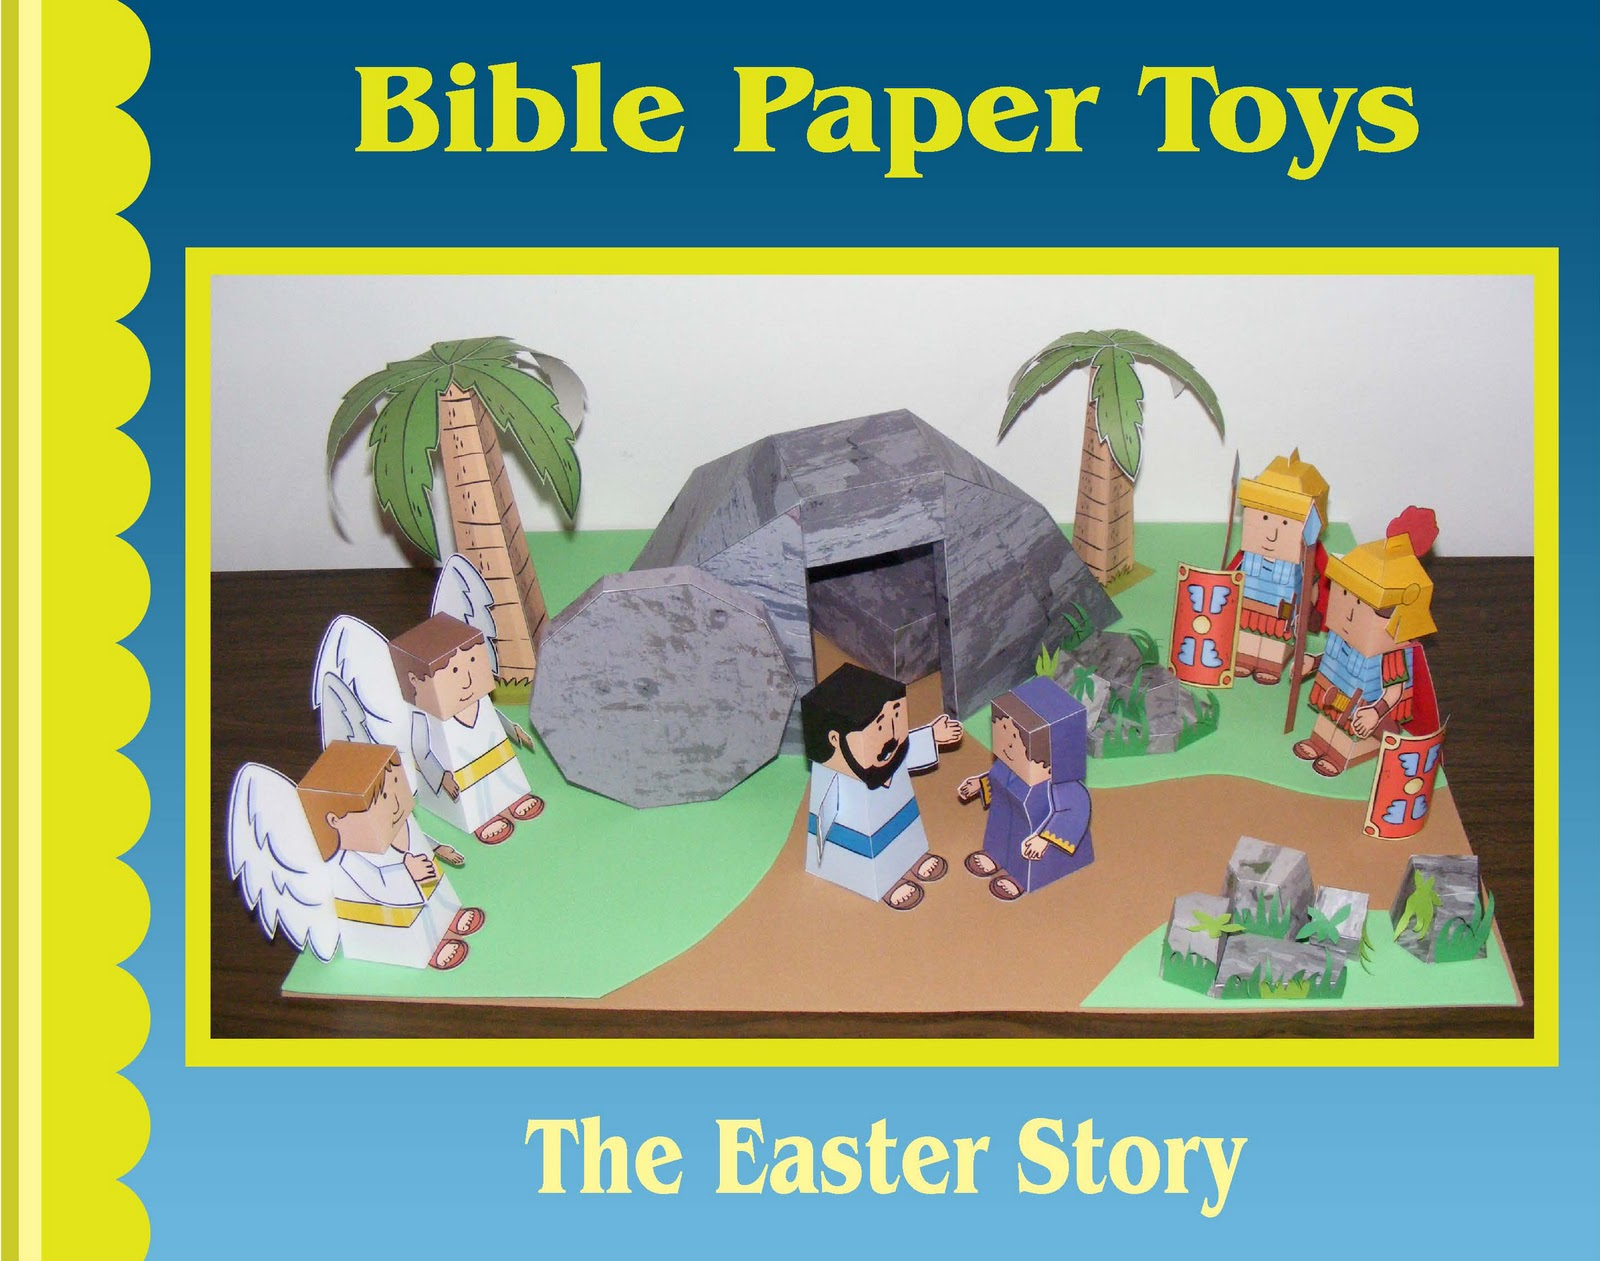 Toys Easter Magazine : My little house bible paper toys easter